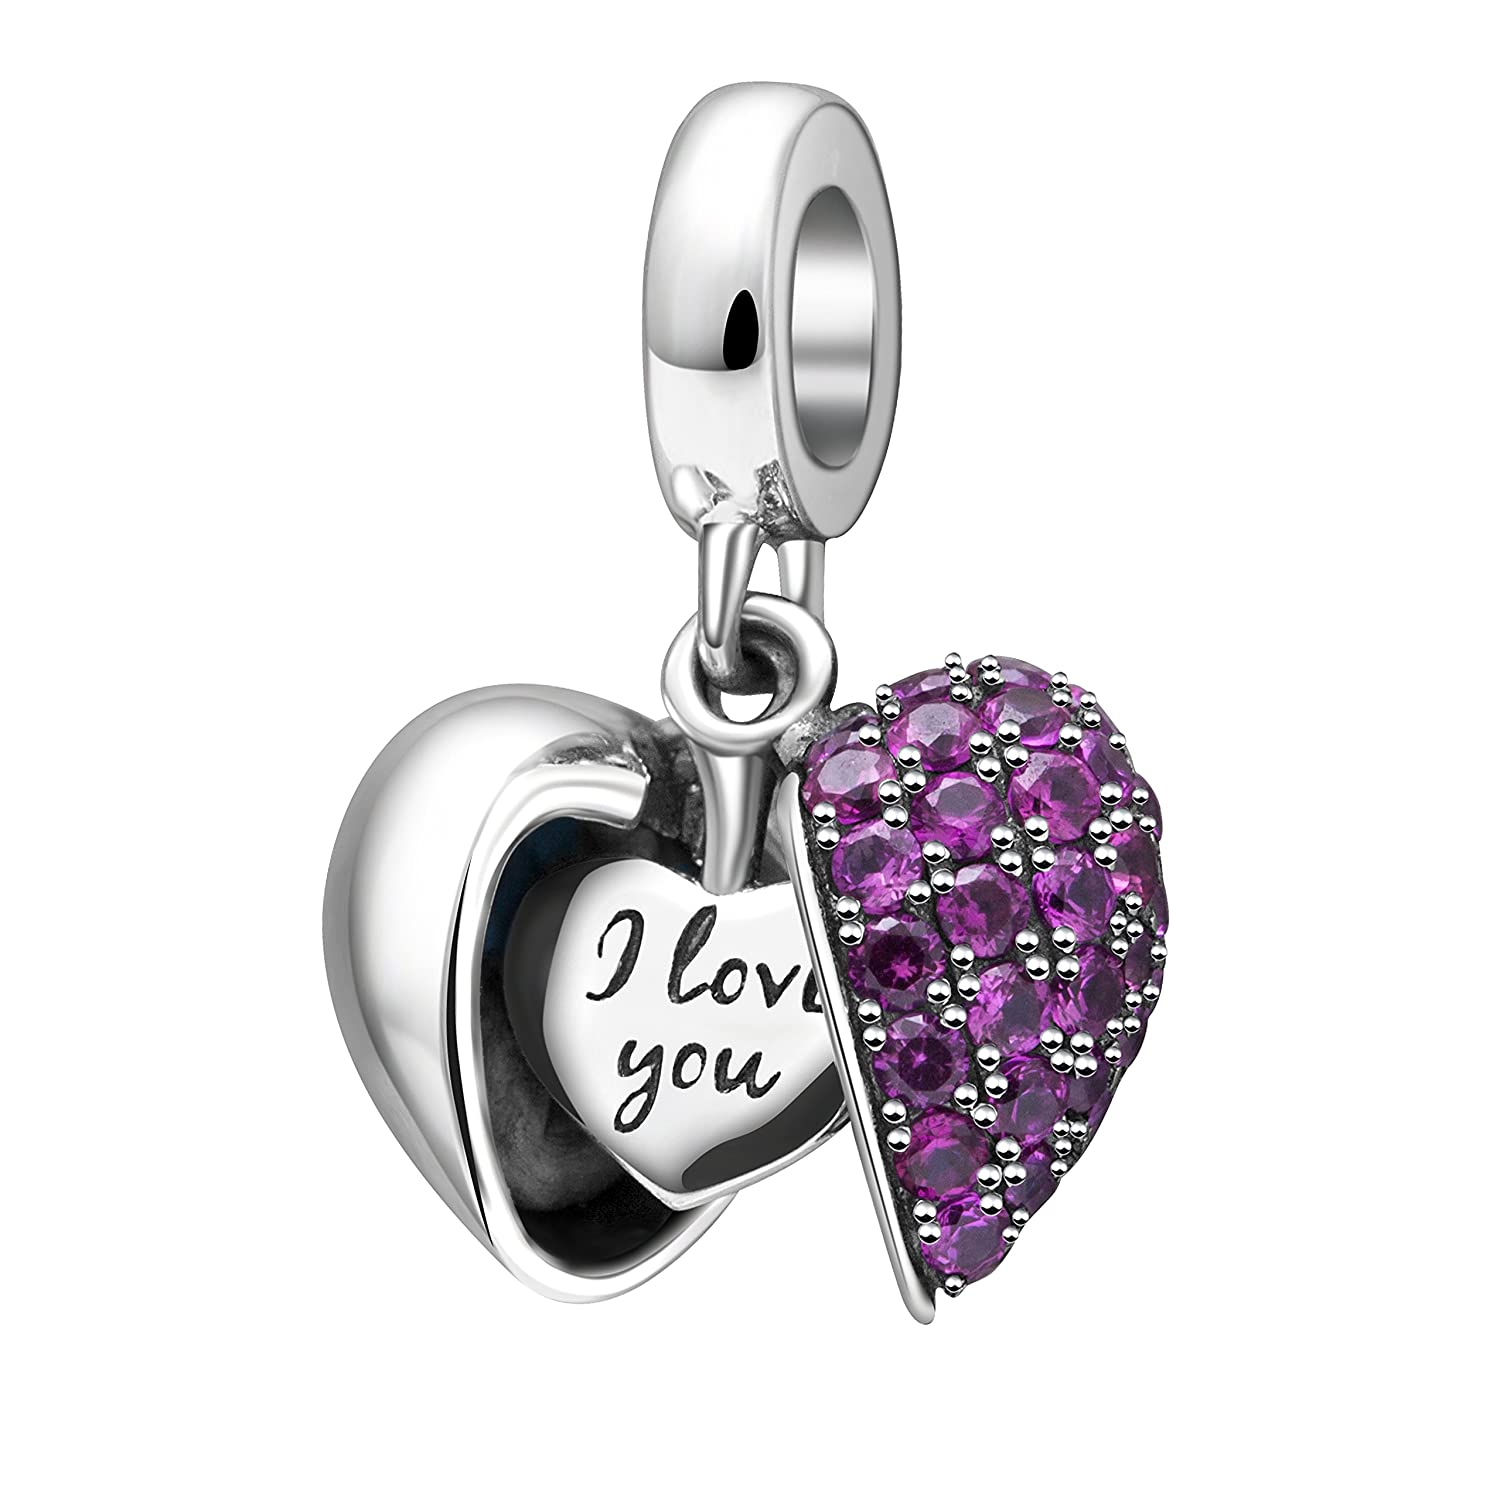 9a37879c6 Amazon.com: I Love You Charm 925 Sterling Silver Love Heart Dangle Bead  Charms for European Charms Bracelet Necklace: Toys & Games